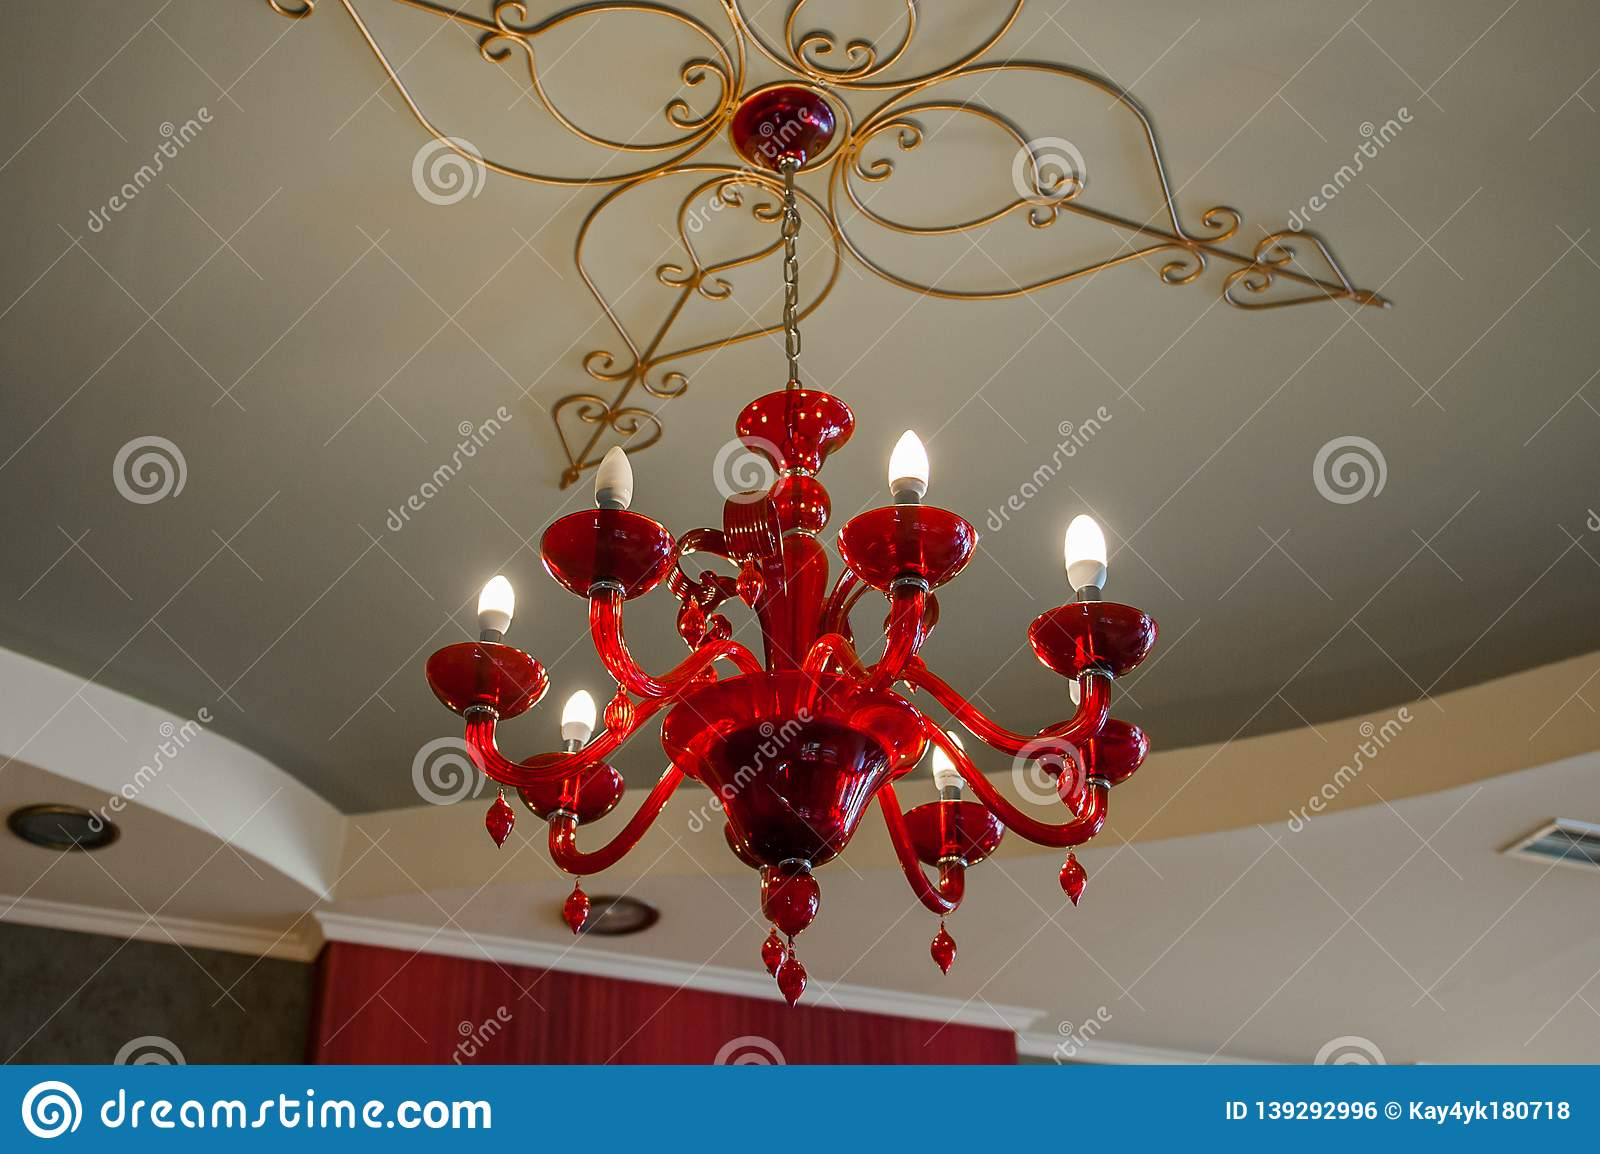 Red chandelier on a patterned ceiling in a dark room, glowing bulbs on it